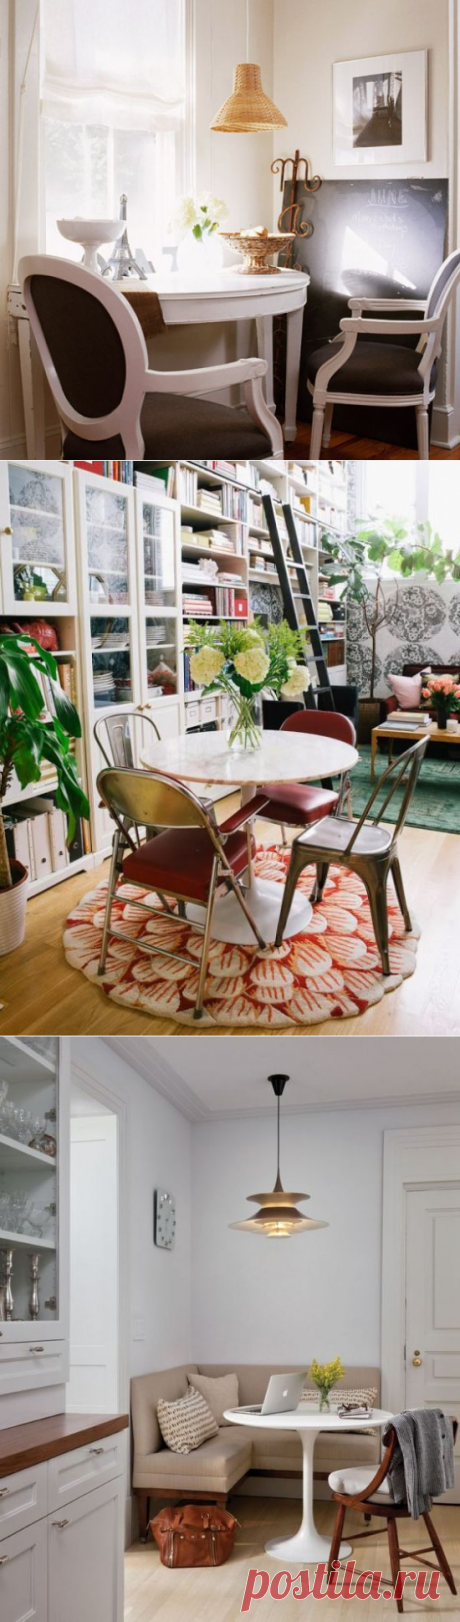 The dining room in the small apartment: 6 tremendous ideas and 25 charming examples